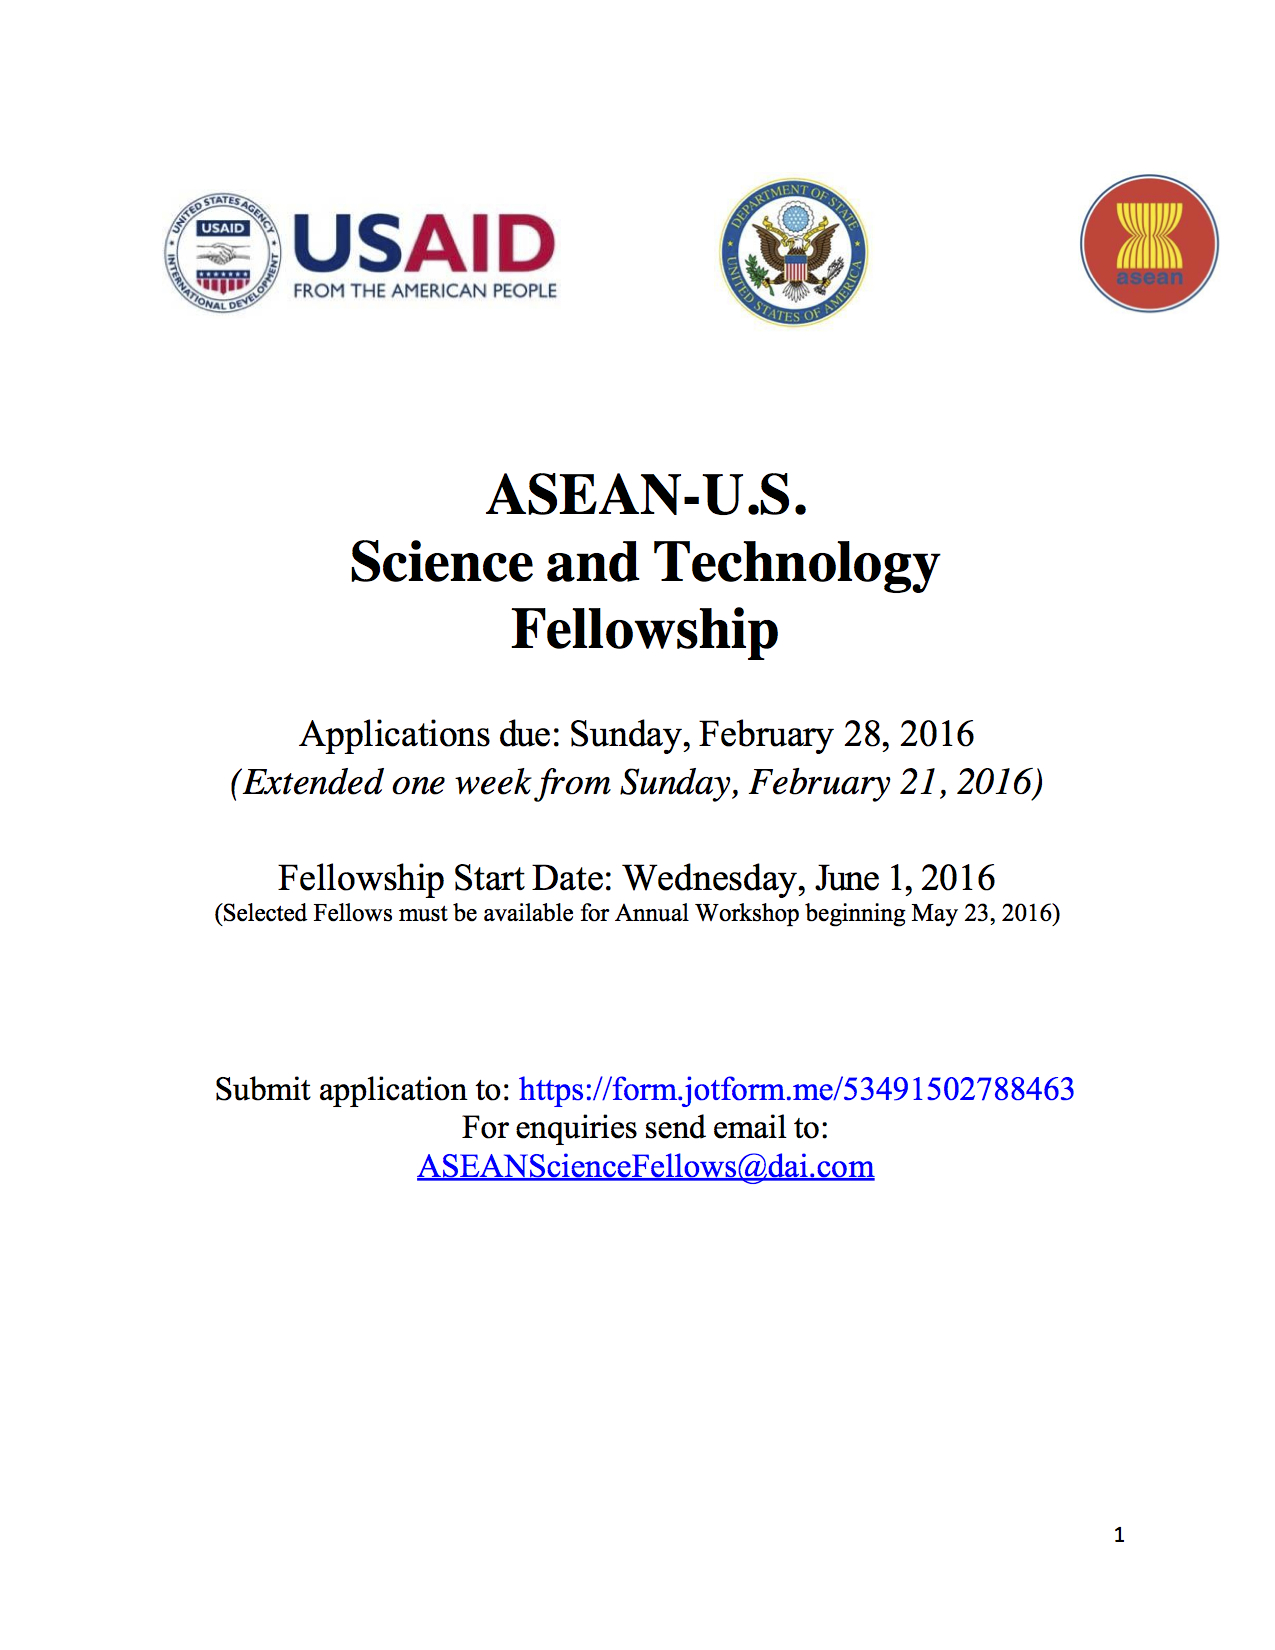 ASEAN-U.S. Science and Technology Fellowship